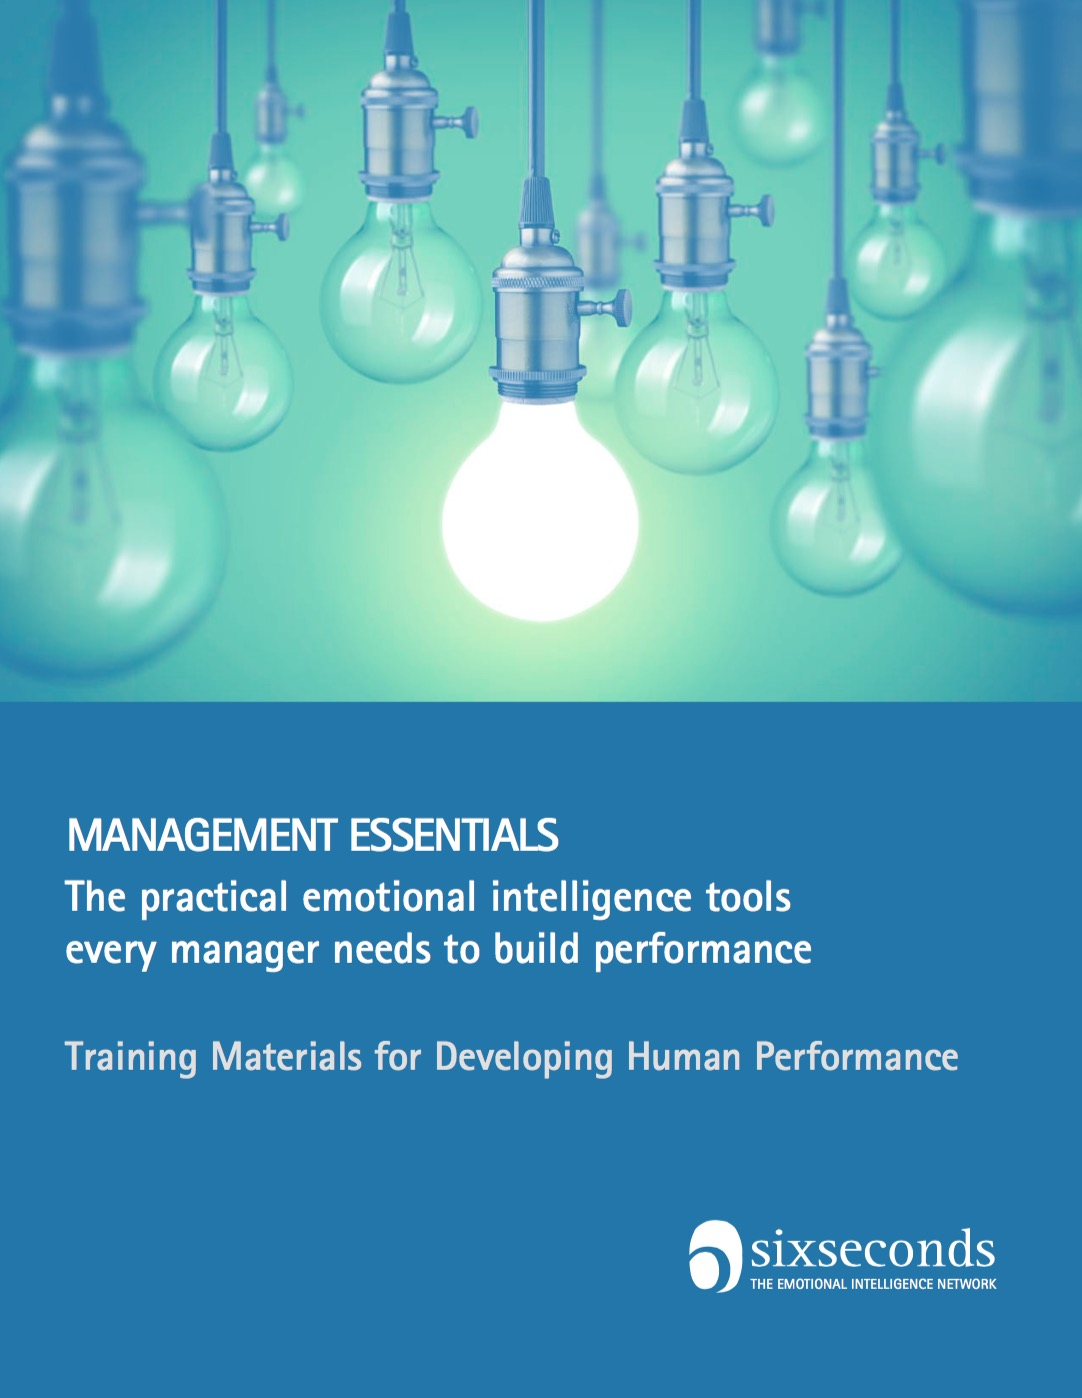 management essentials complete kit  u2013 downloadable  u2013 the eq store